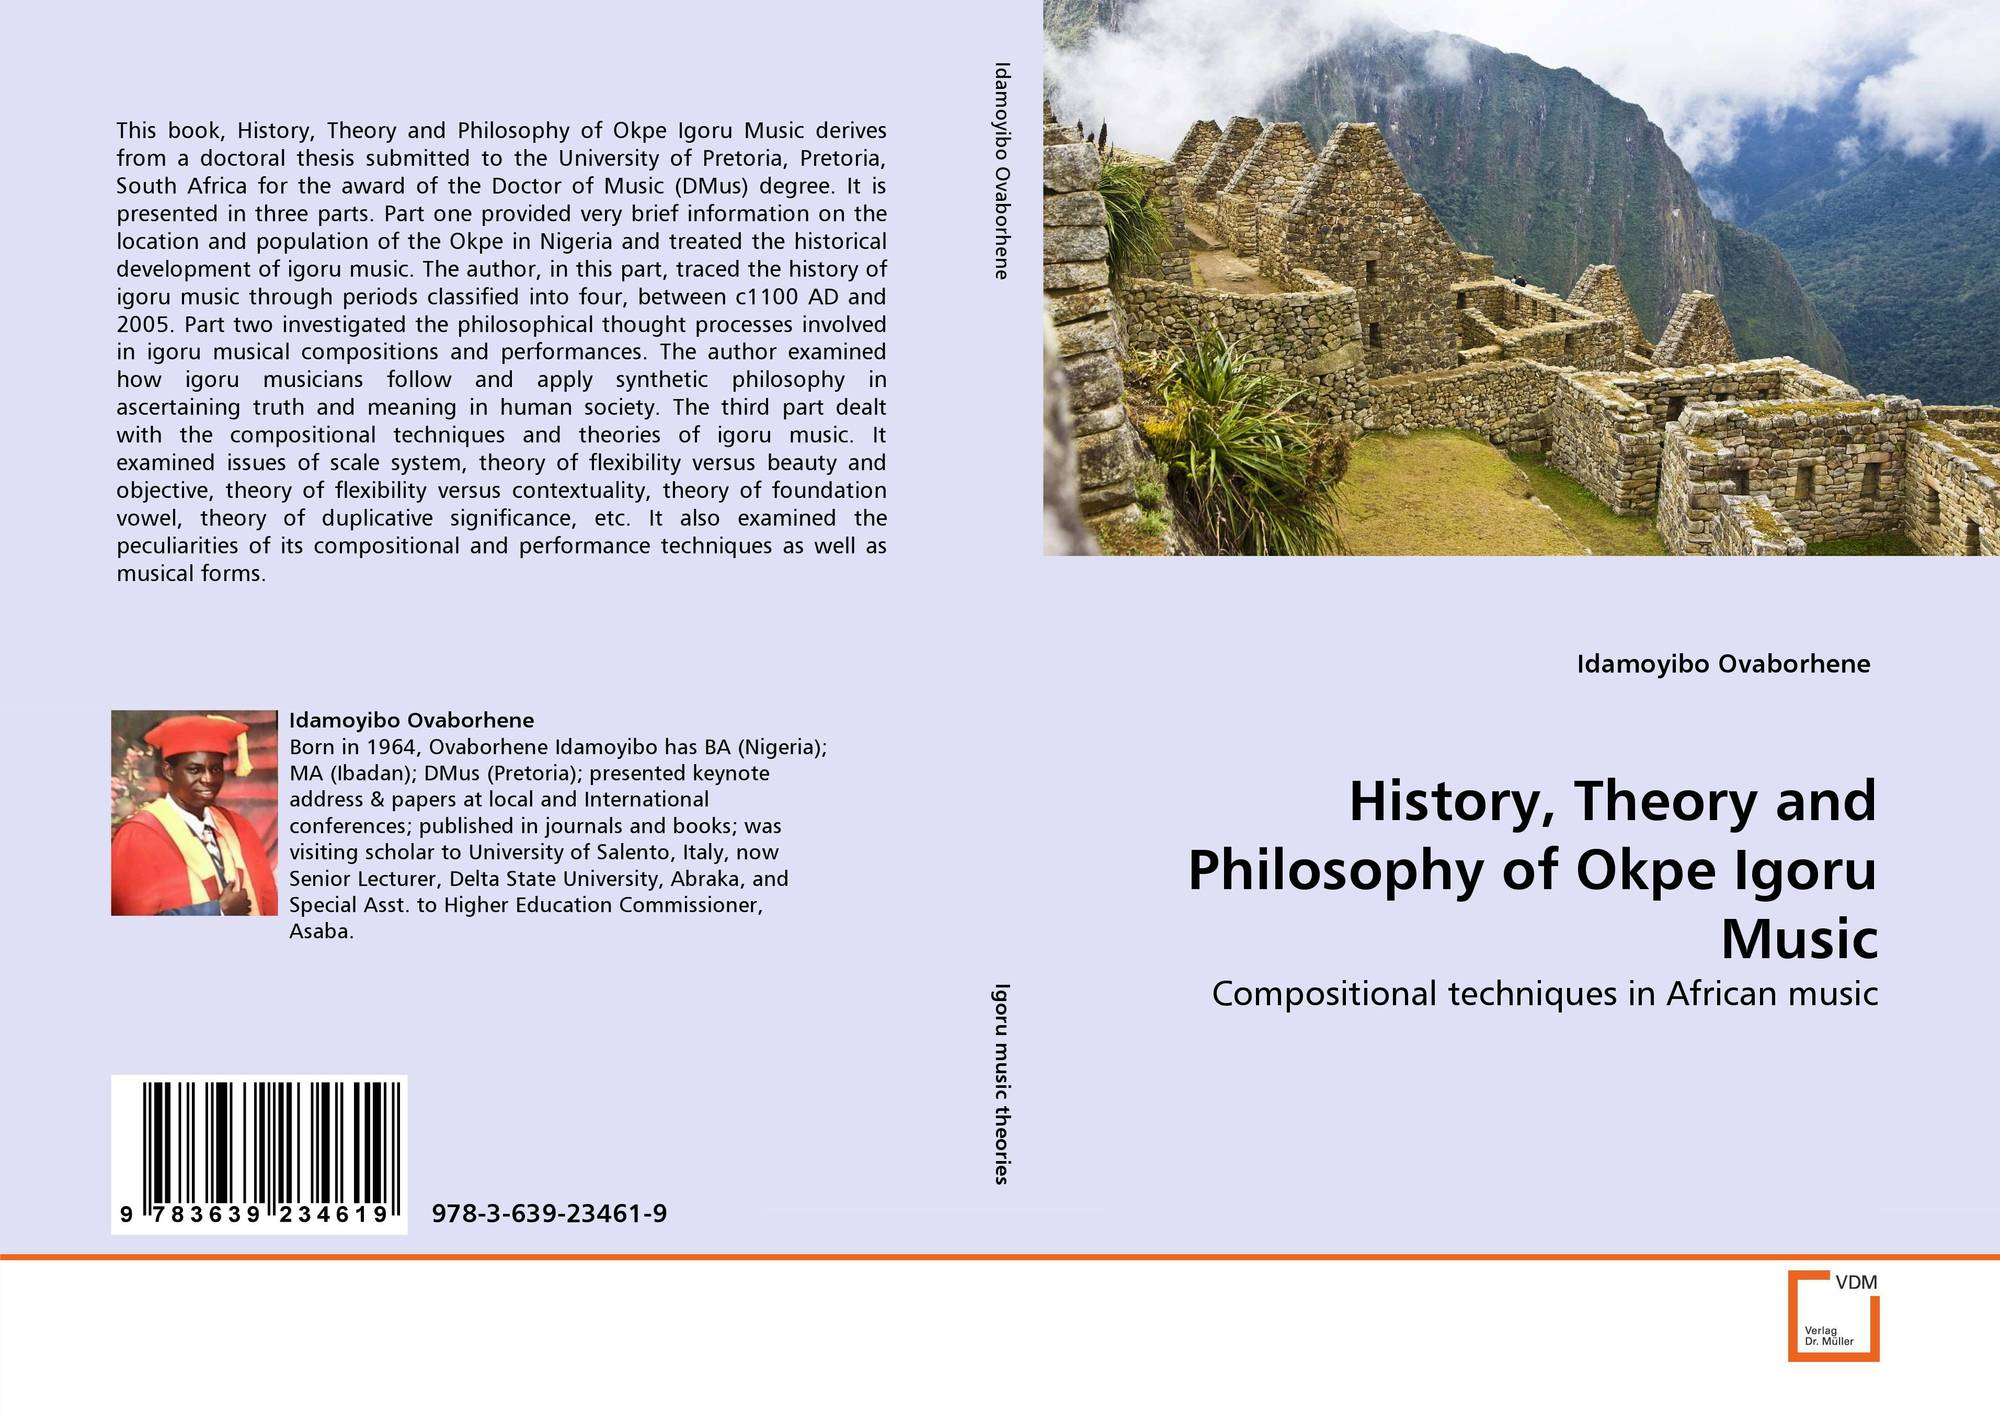 History, Theory and Philosophy of Okpe Igoru Music, 978-3-639-23461